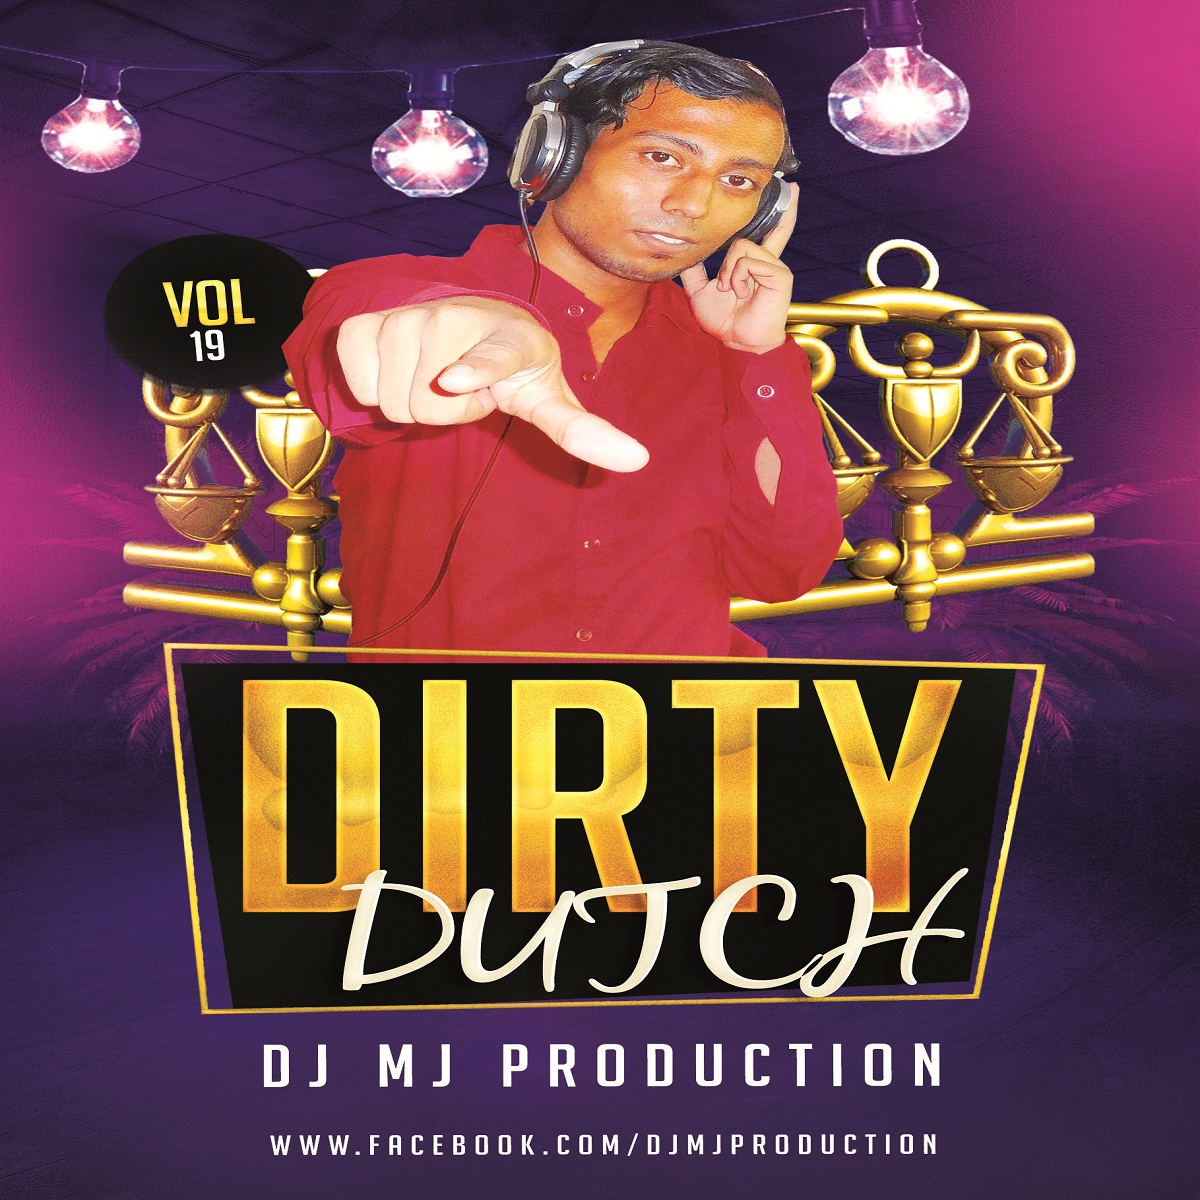 Dirty Dutch Vol-19 DJ Mj Production